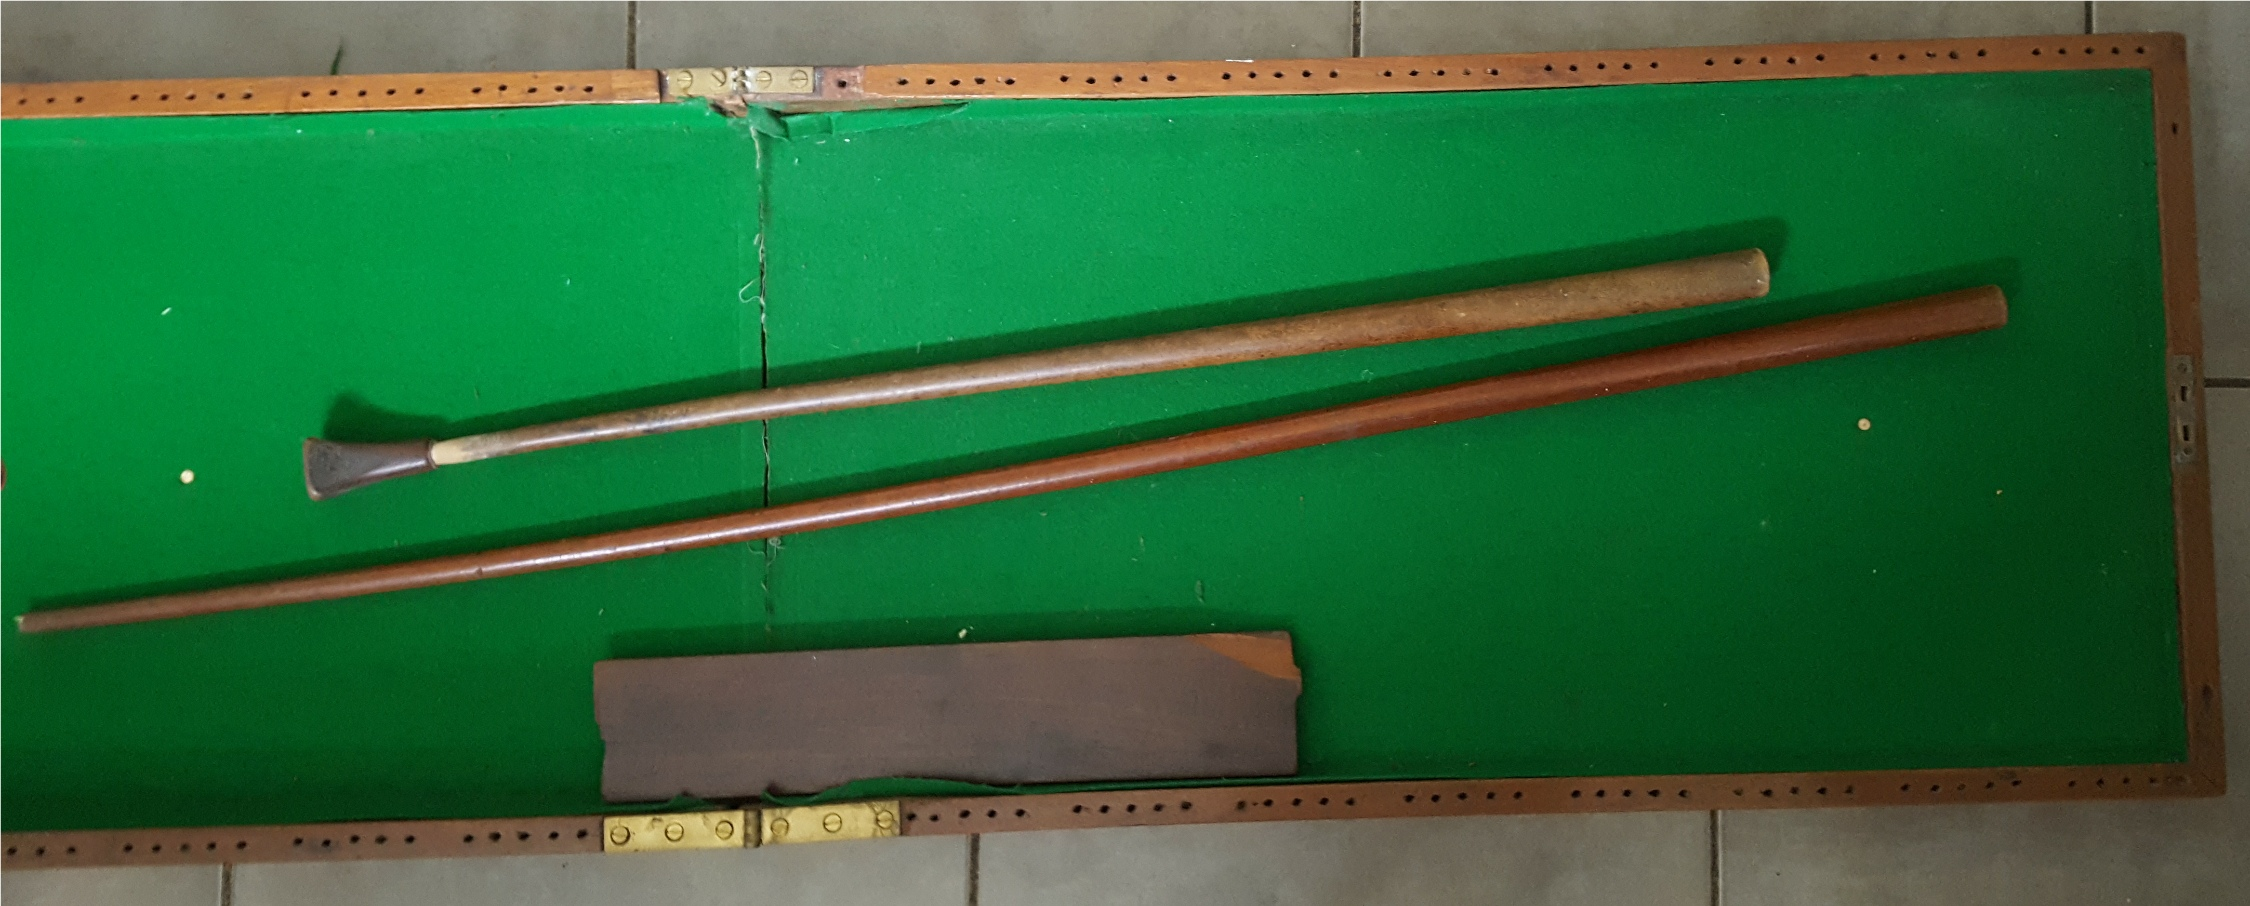 Lot 47 - Antique Vintage Snooker Style Bagatelle Board